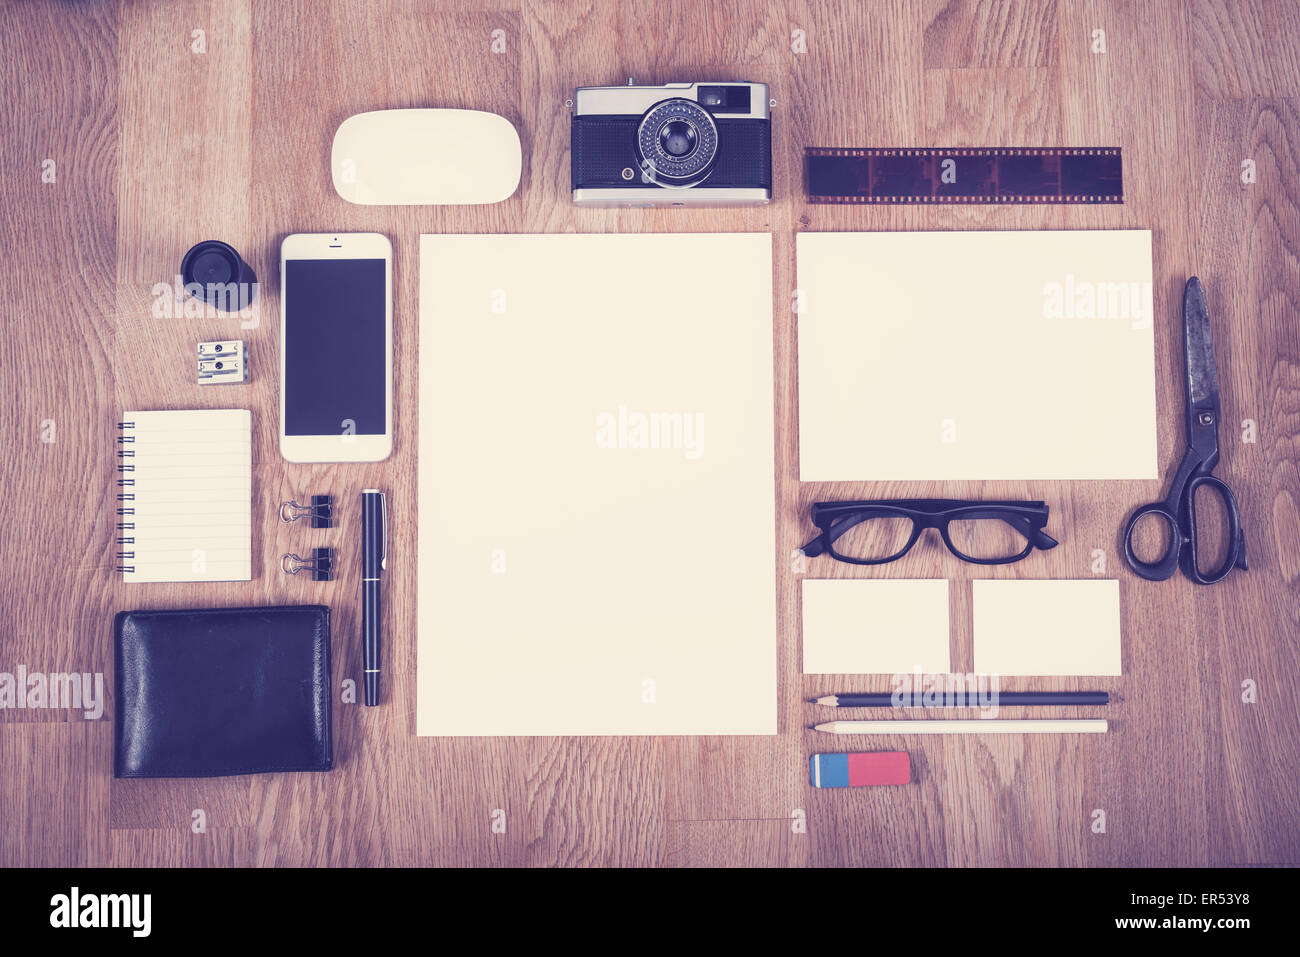 Corporate identity design template in vintage color style showing different old and new items Stock Photo